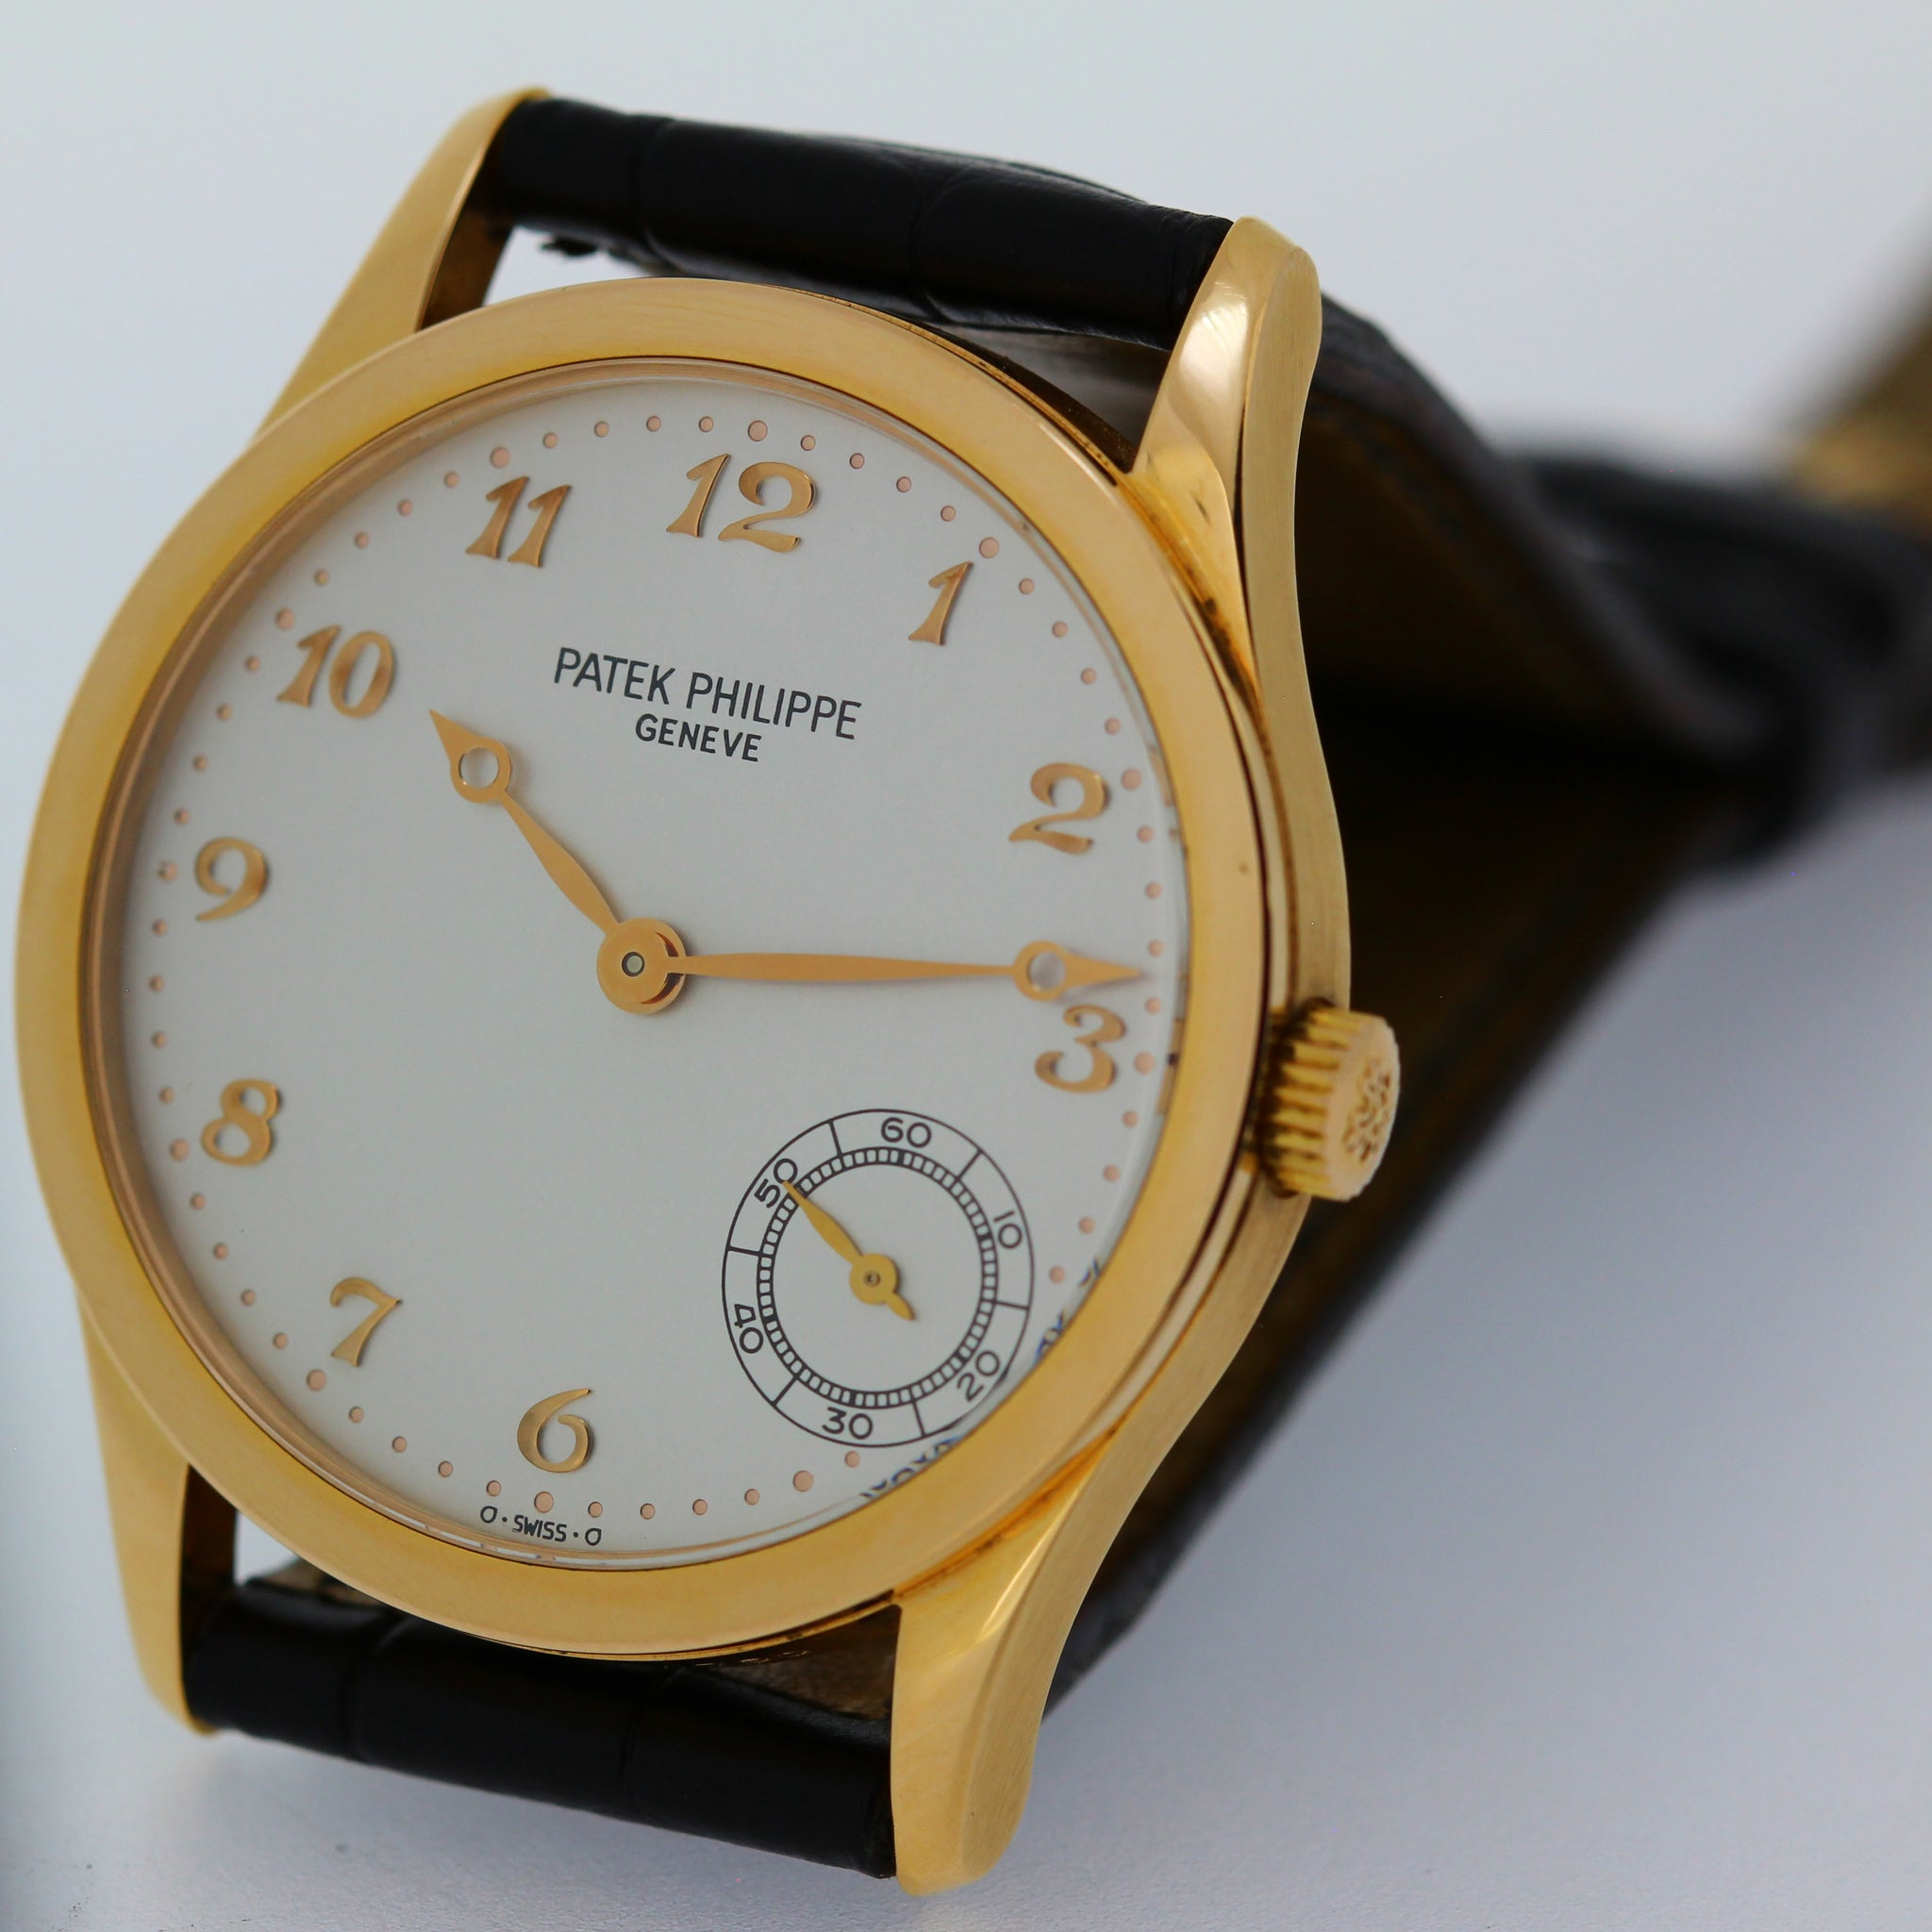 Patek Philippe 5026R-001 Calatrava Watch